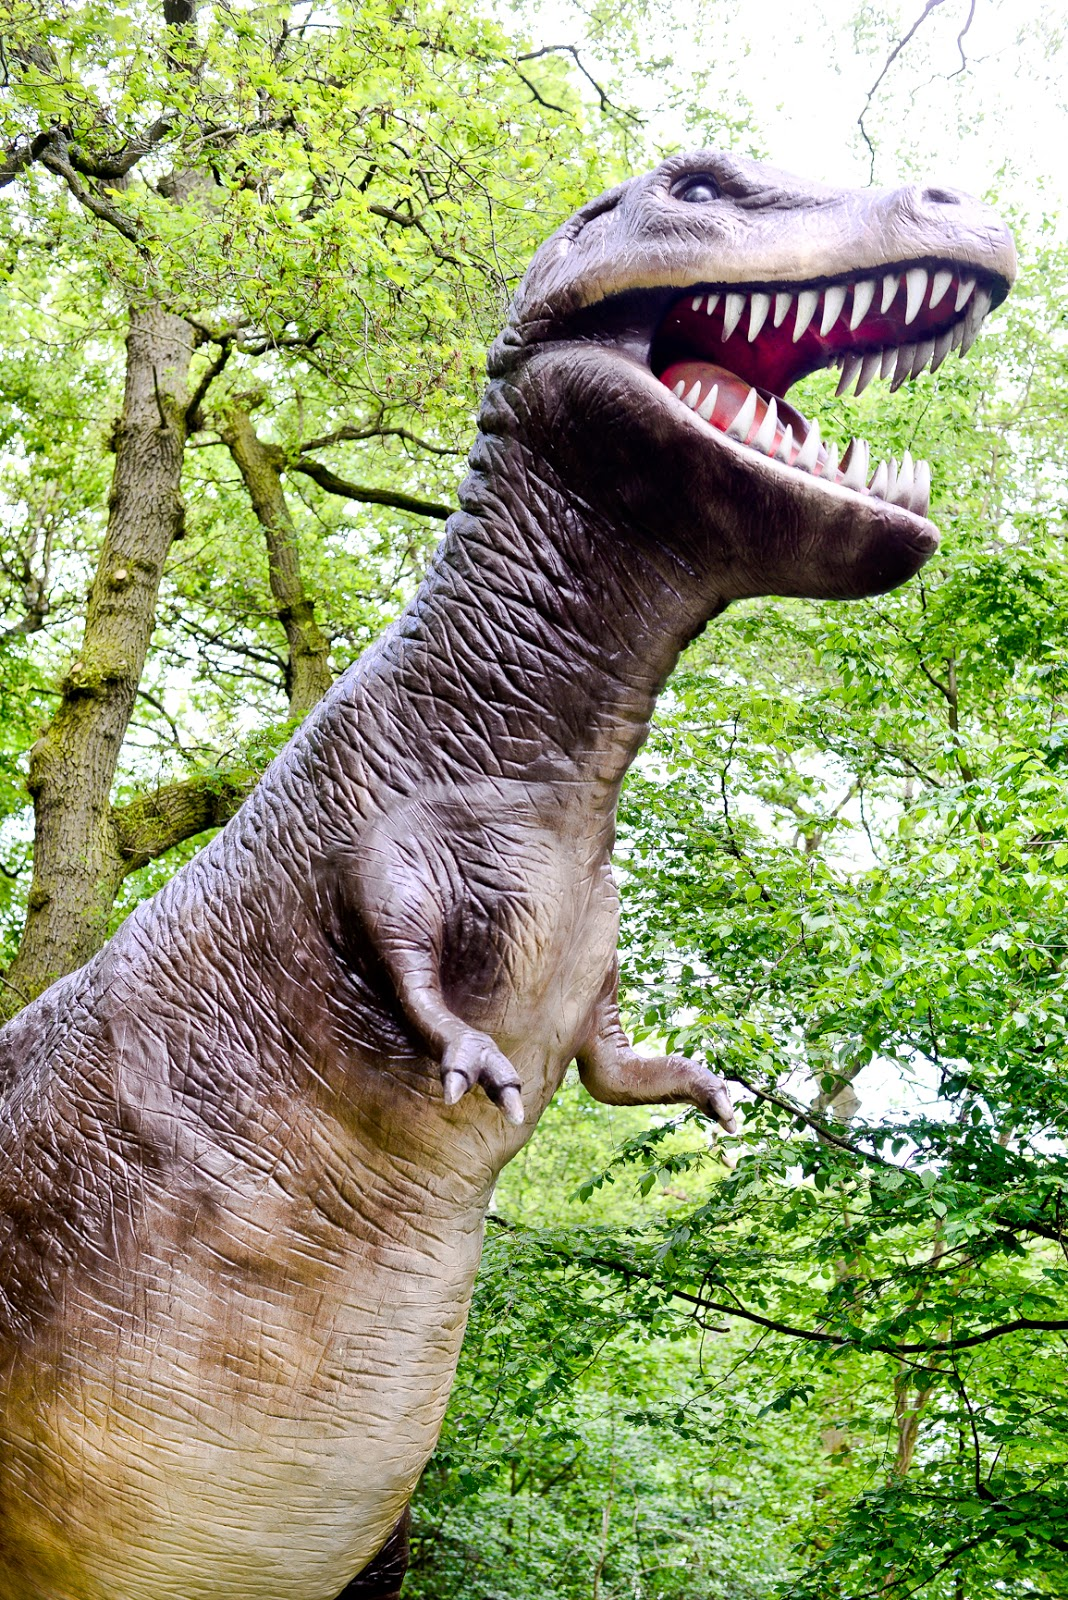 world of dinosaurs paradise wildlife park, paradise wildlife park,